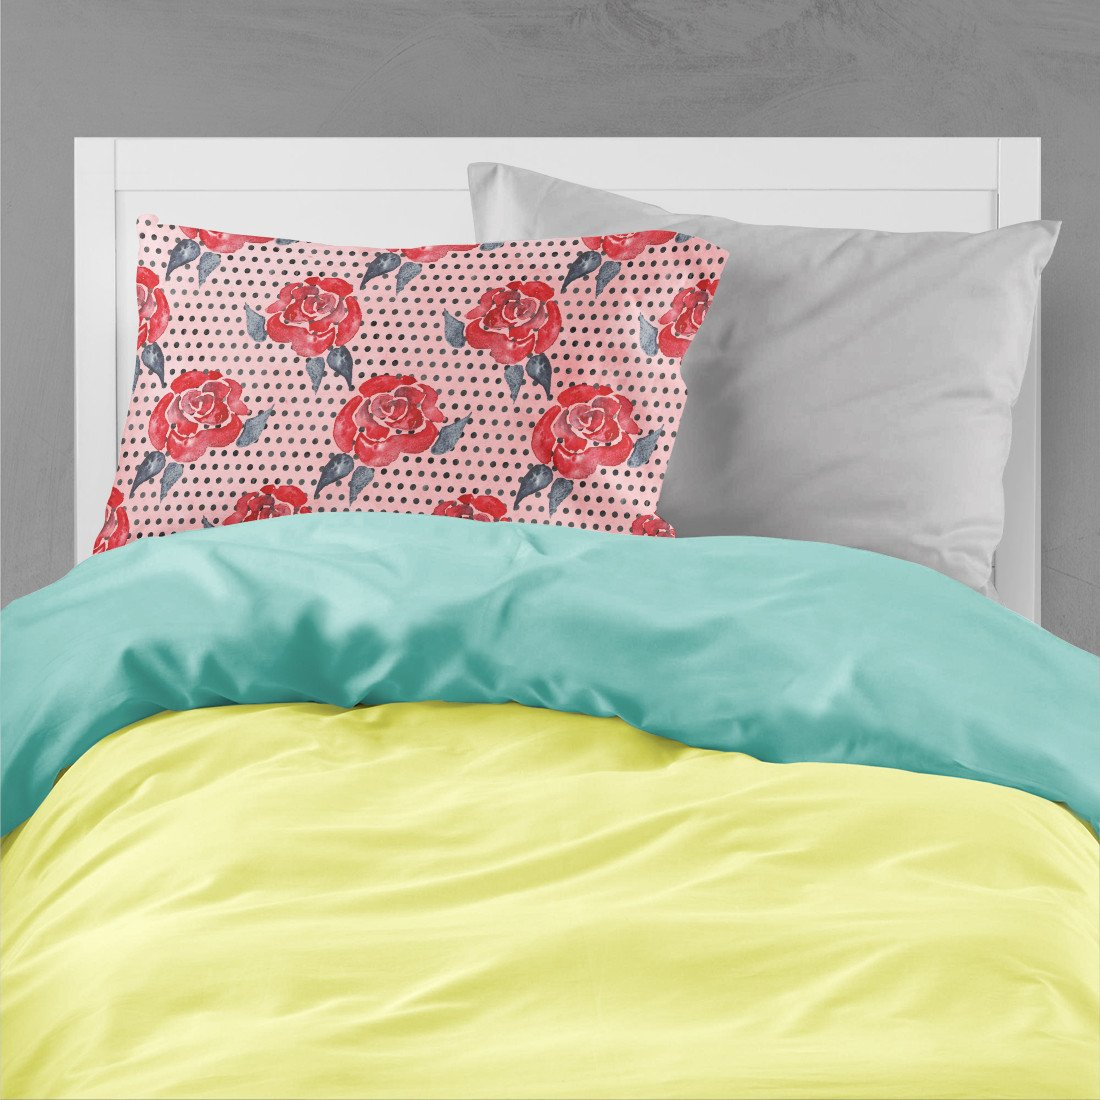 Watercolor Red Roses and Polkadots Fabric Standard Pillowcase BB7513PILLOWCASE by Caroline's Treasures